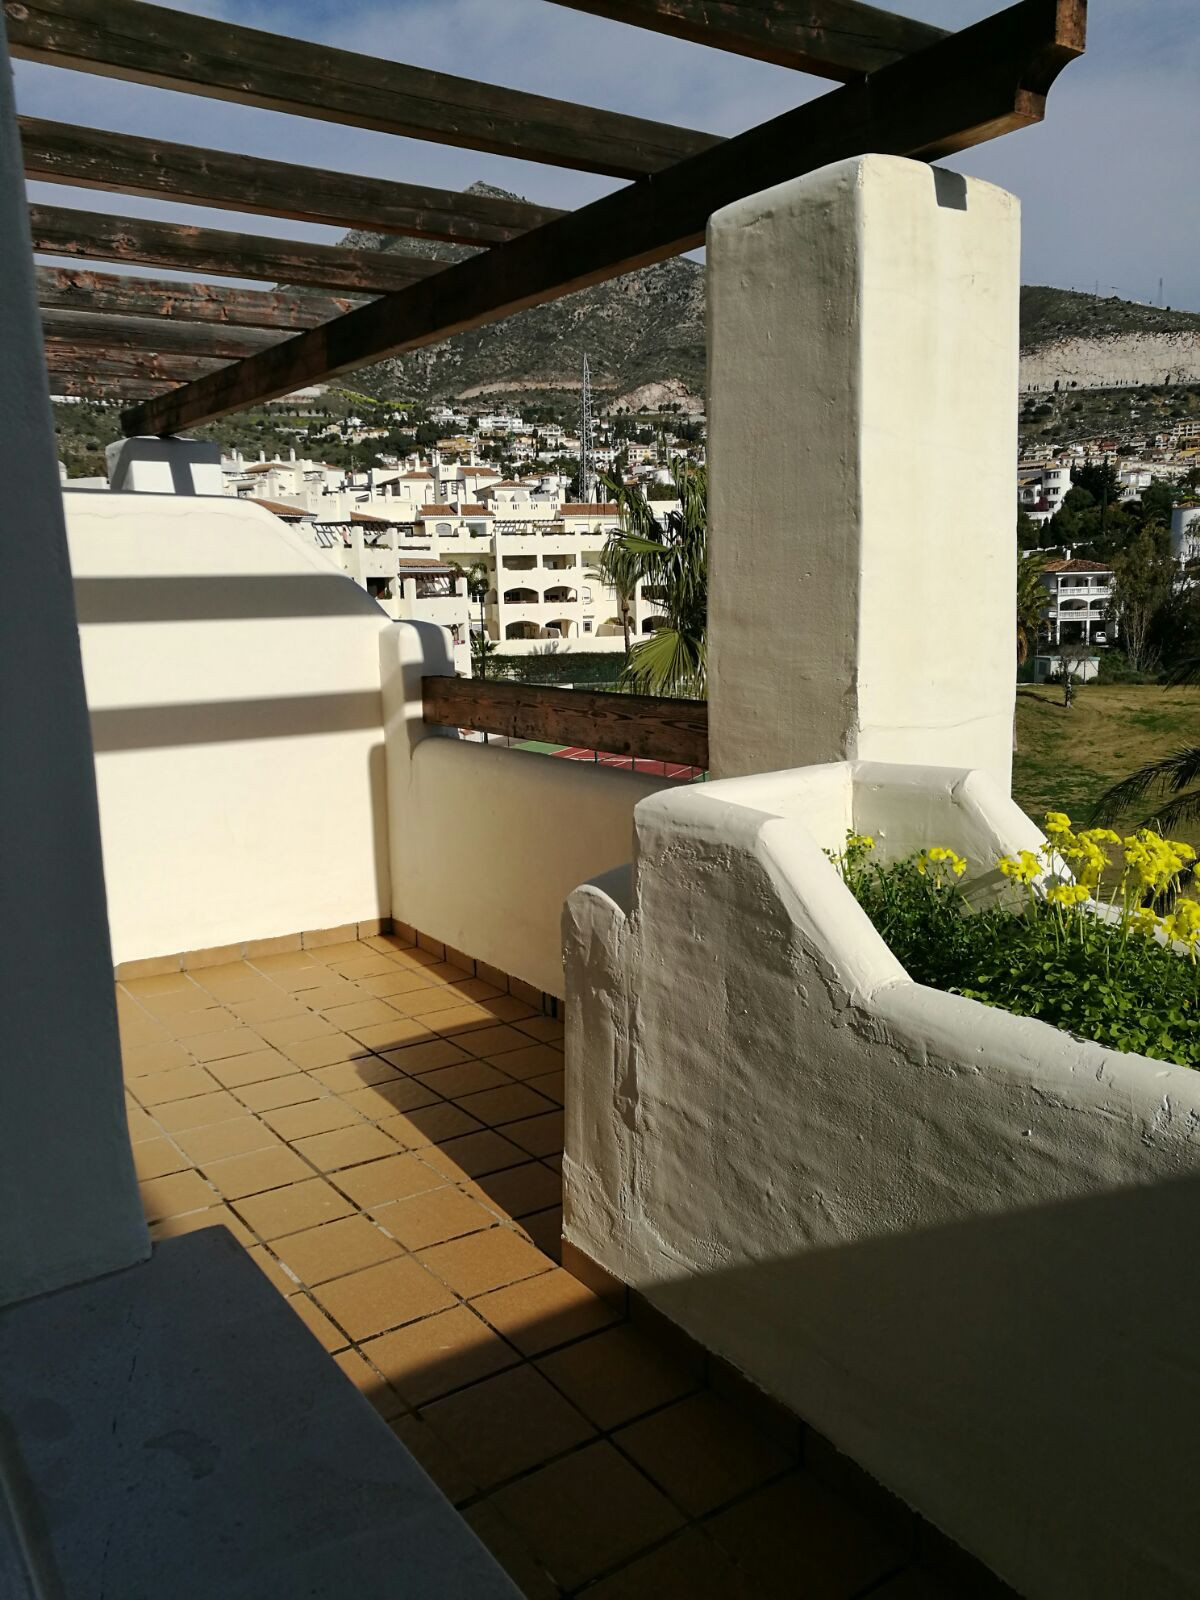 For sale a 2 bedrooms, 2 bathrooms apartment with a 13m2 terrace in an urbanization with swimming-po, Spain